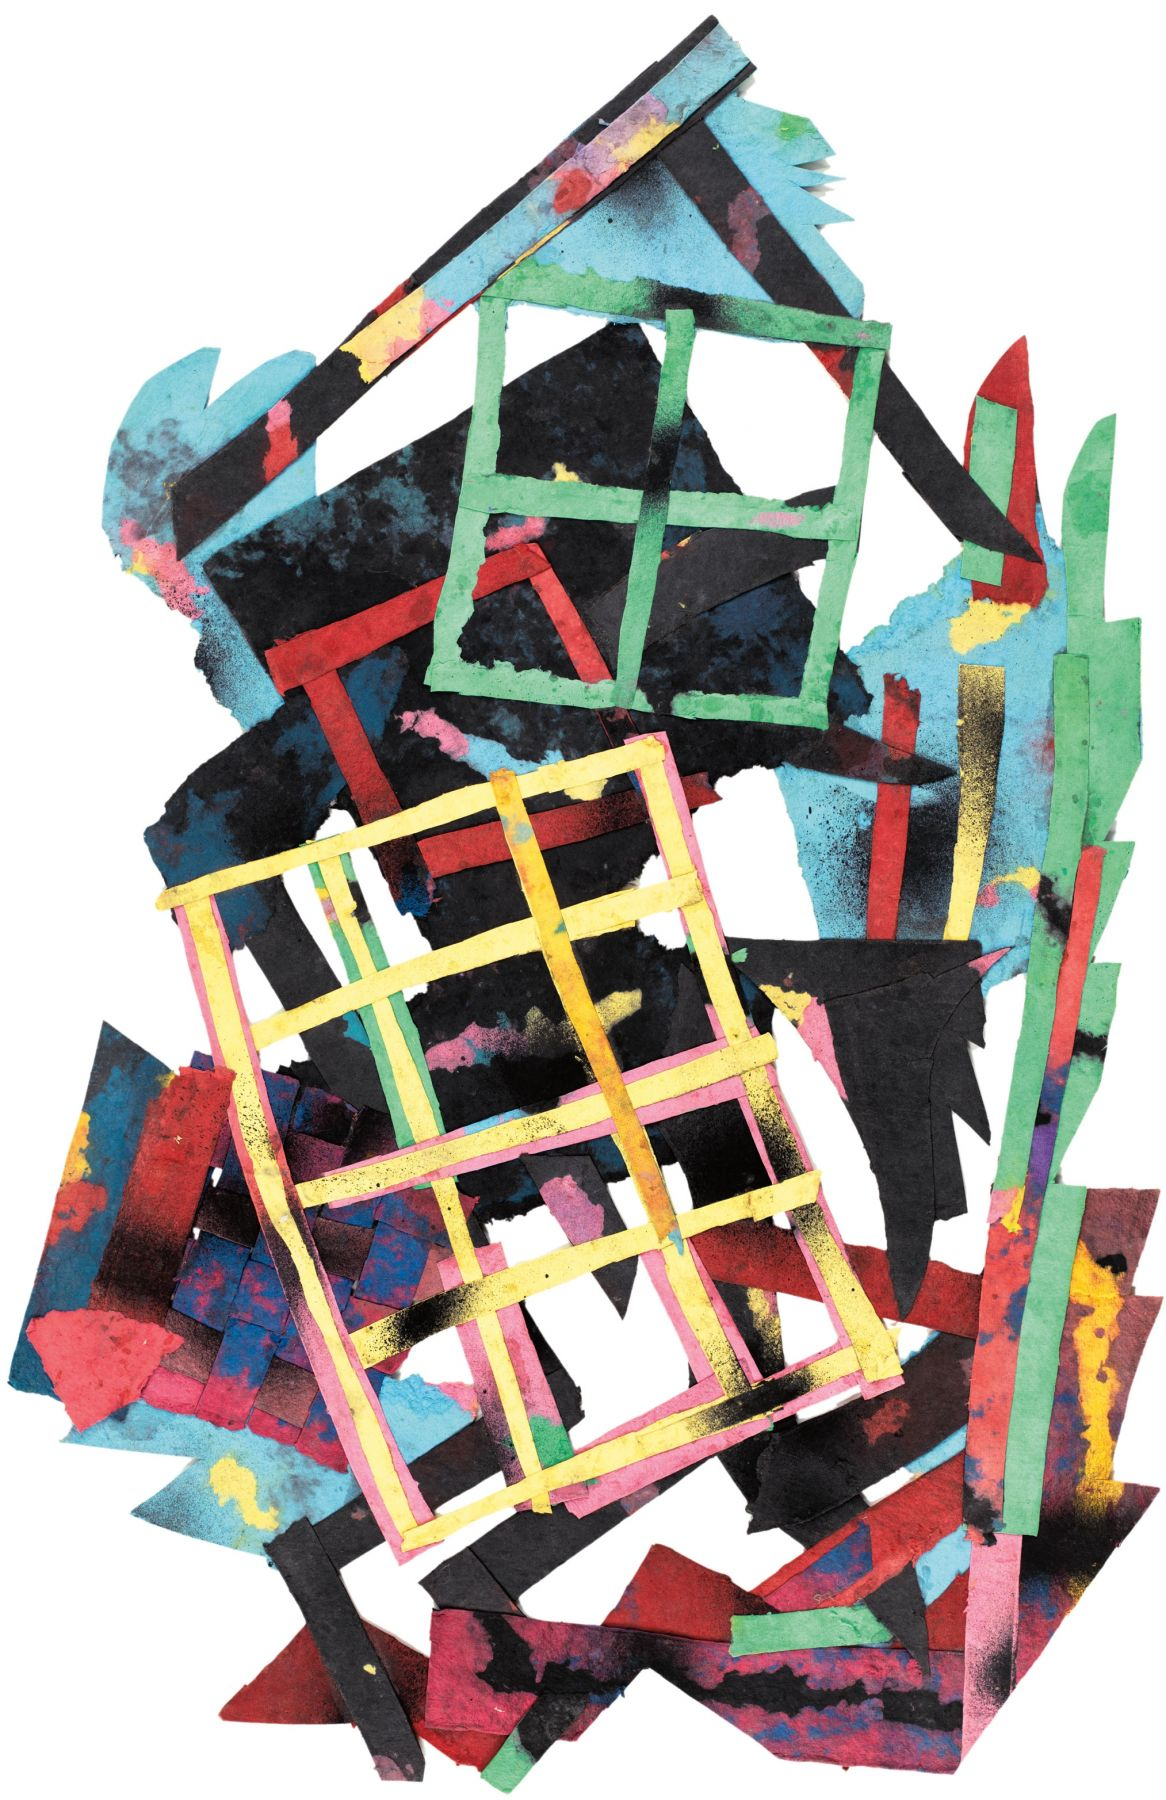 Mercer Street #9, 1988, Paper collage